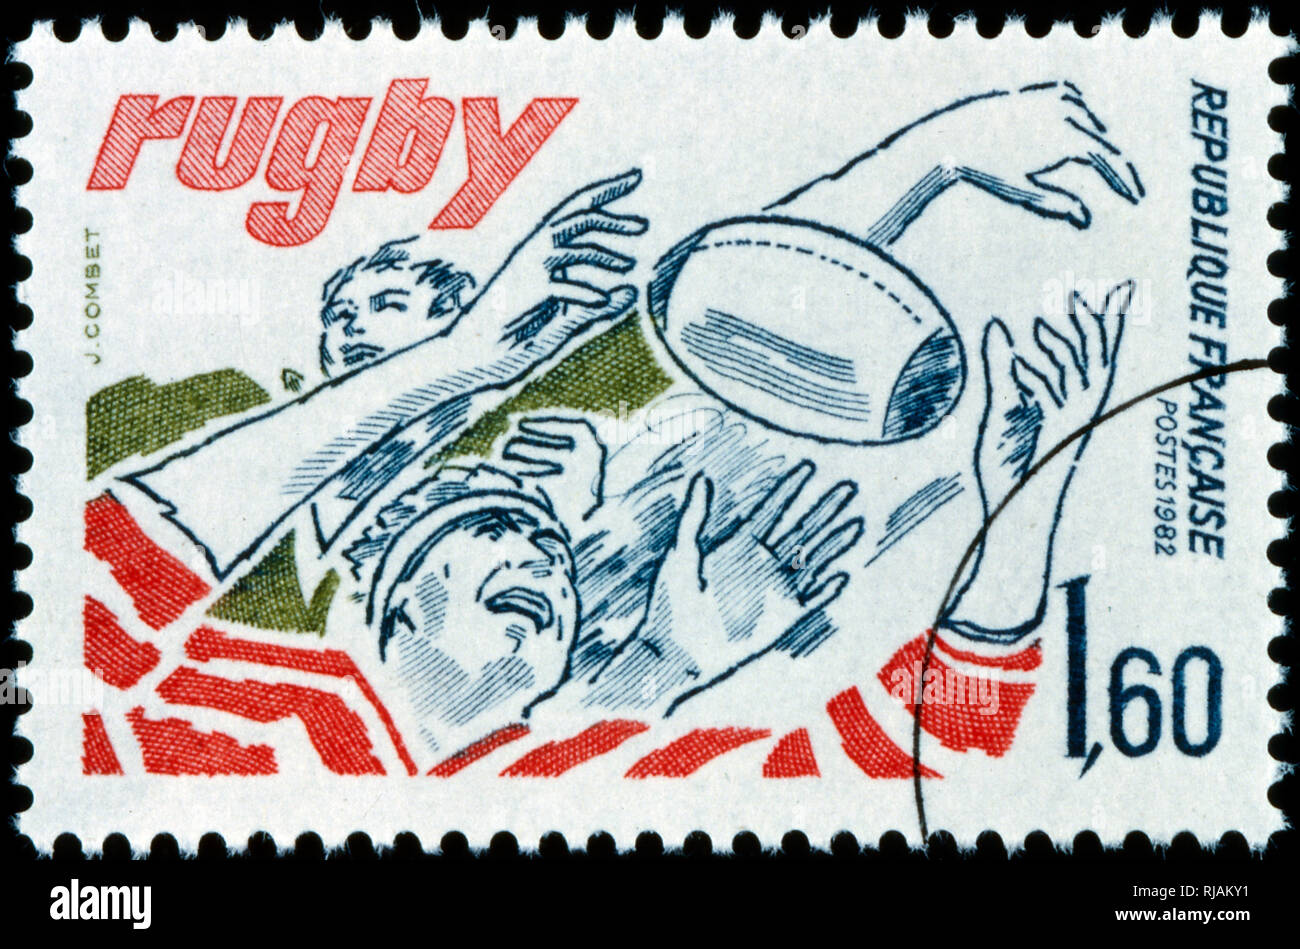 French postage stamp commemorating the sport of Rugby. 1982 - Stock Image